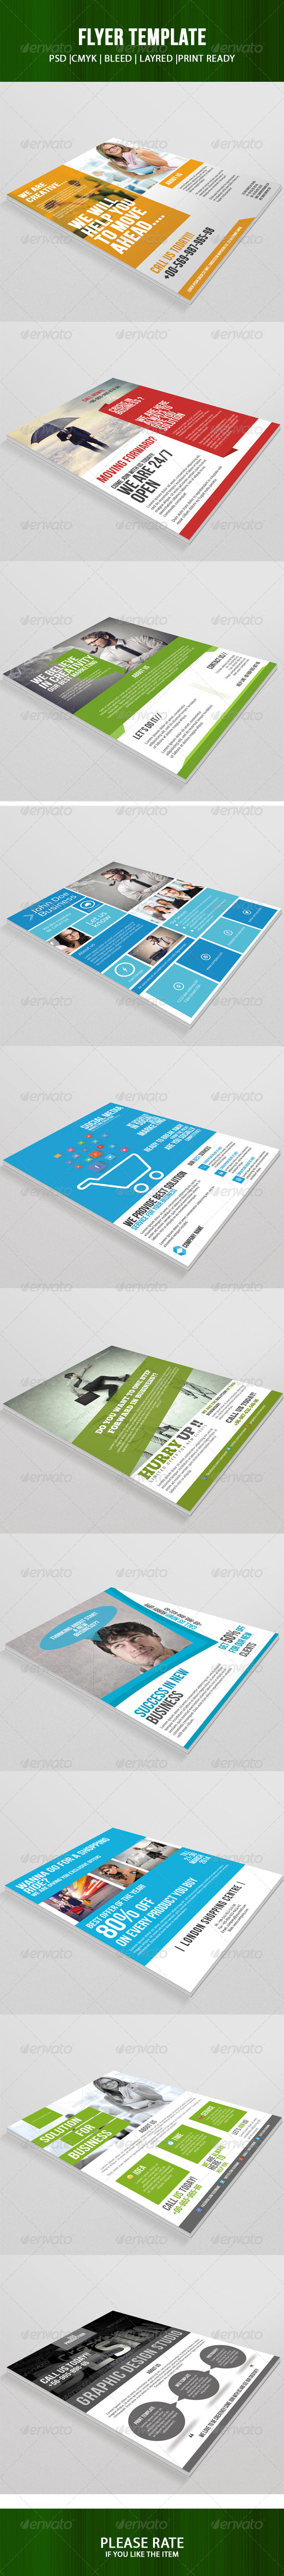 10 Flyer Template Bundle - Corporate Flyers